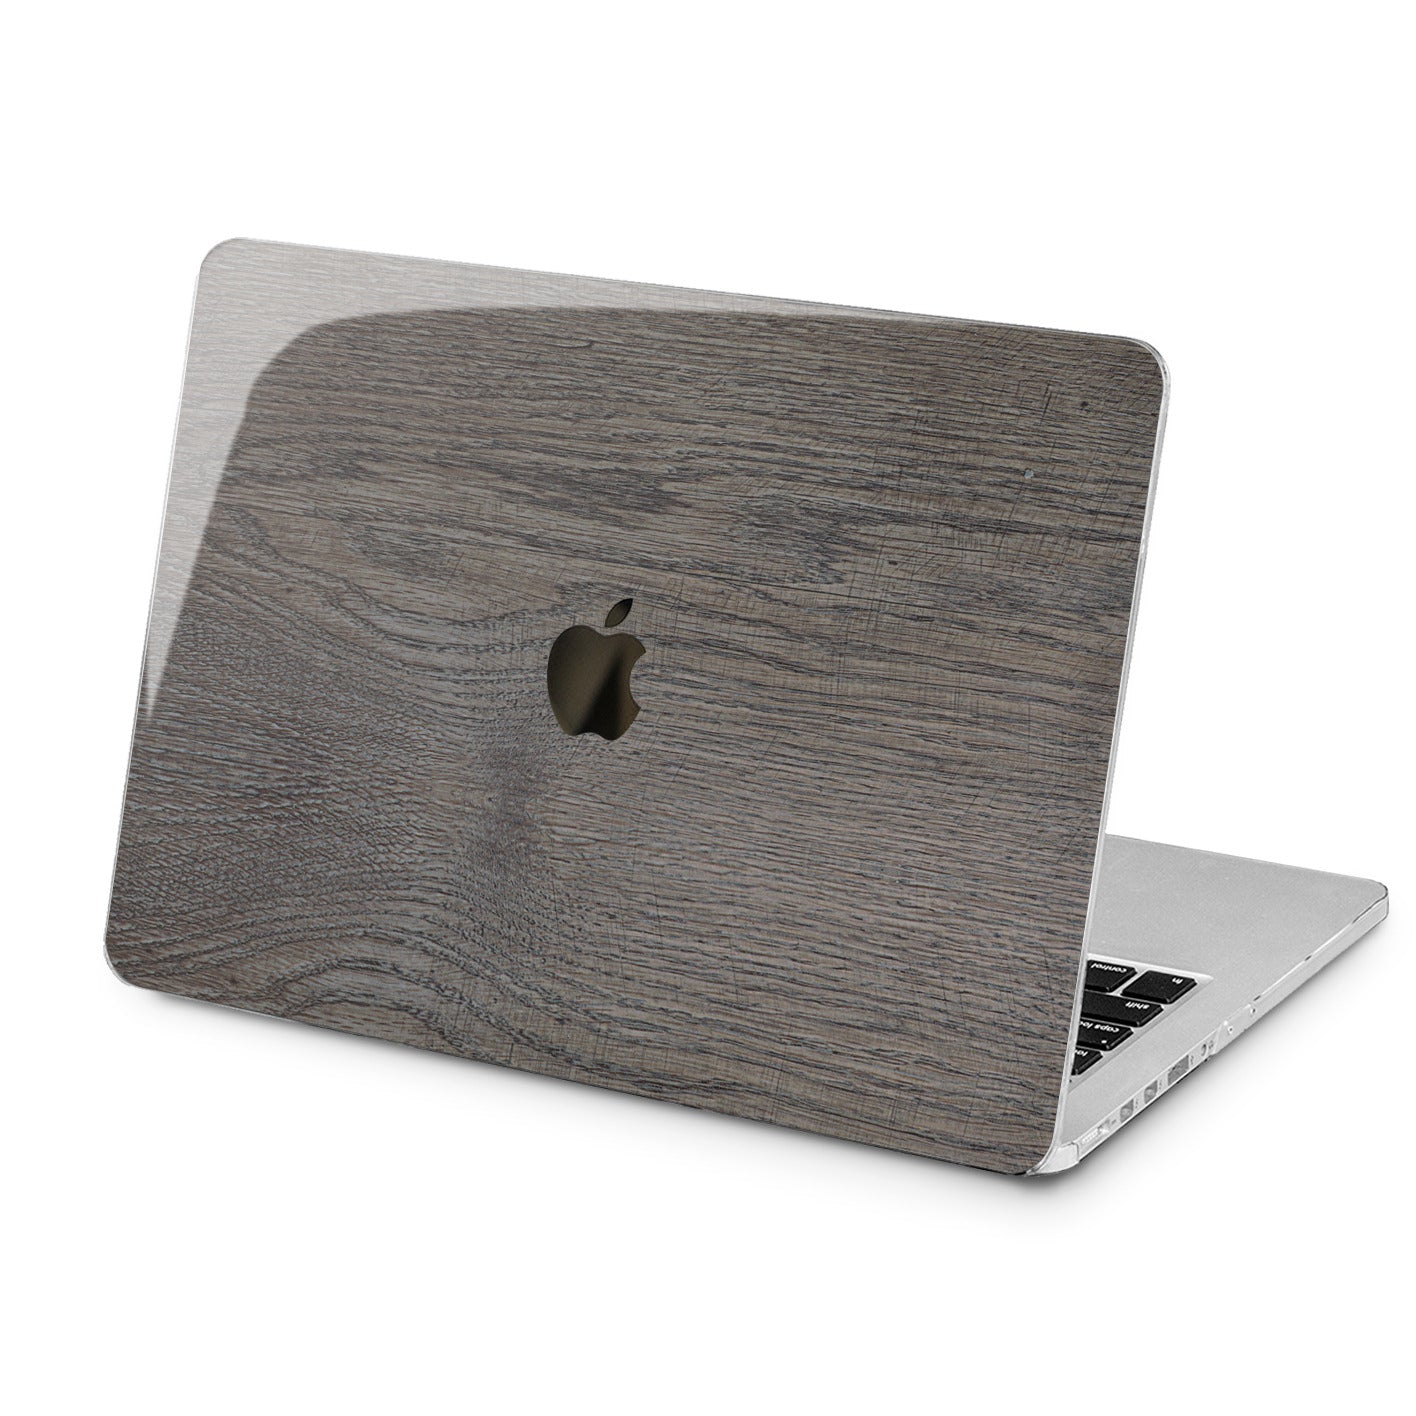 Lex Altern Lex Altern Grey Polished Wood Case for your Laptop Apple Macbook.